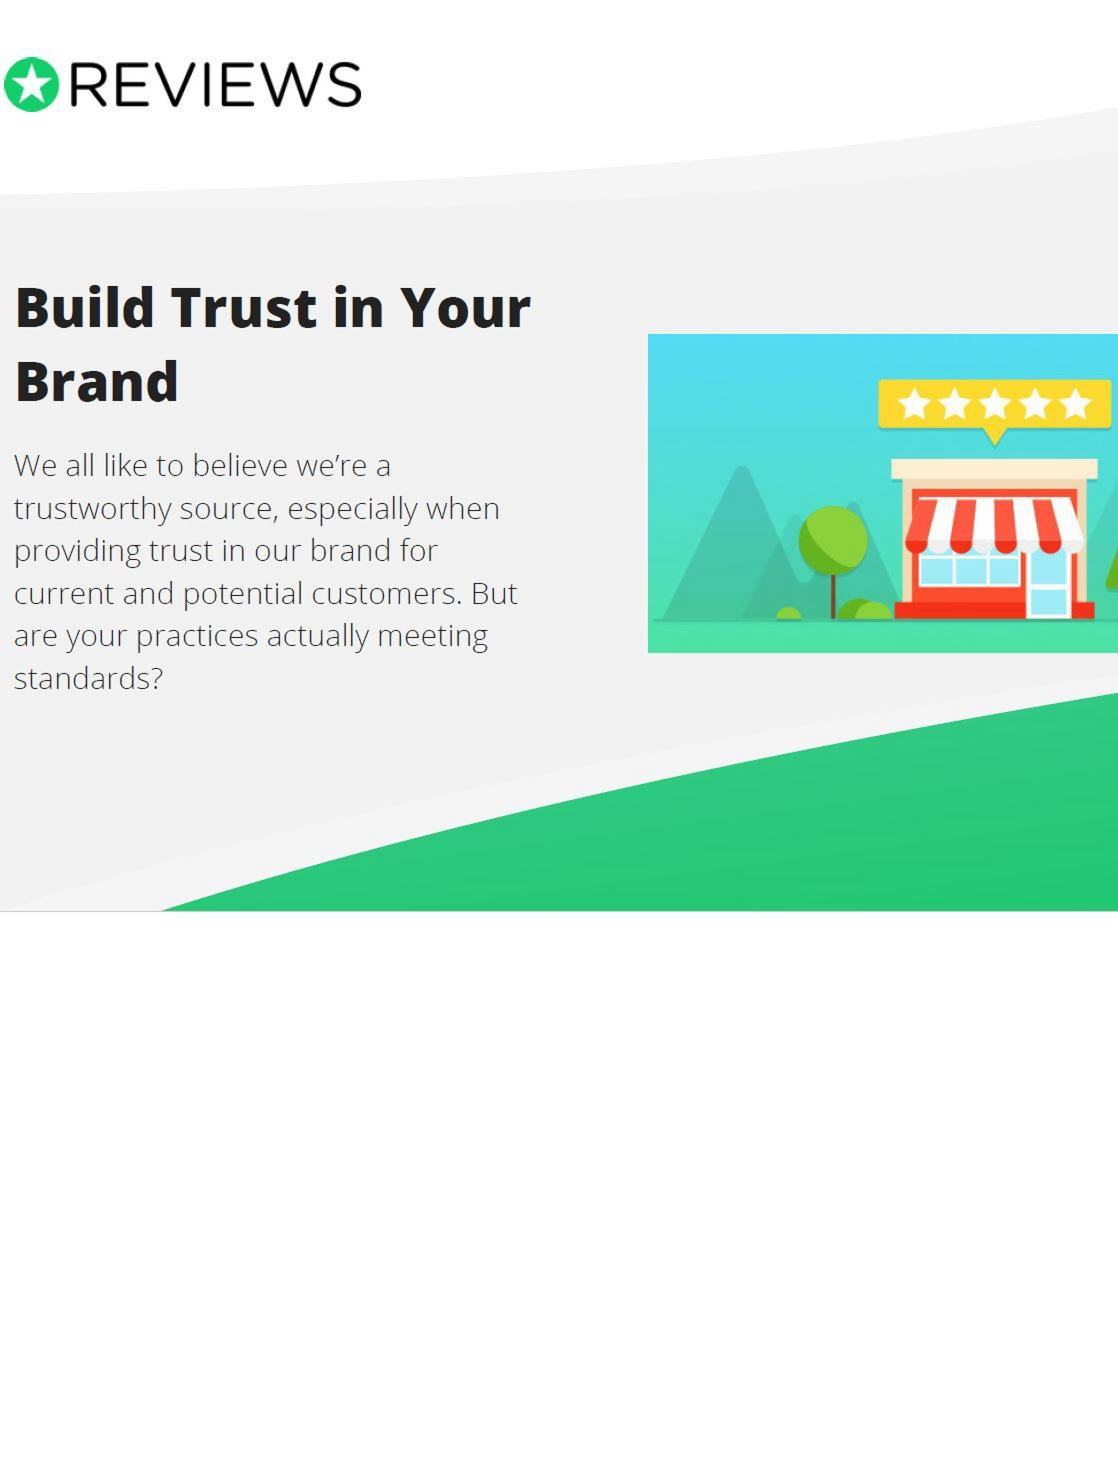 Build trust in your brand